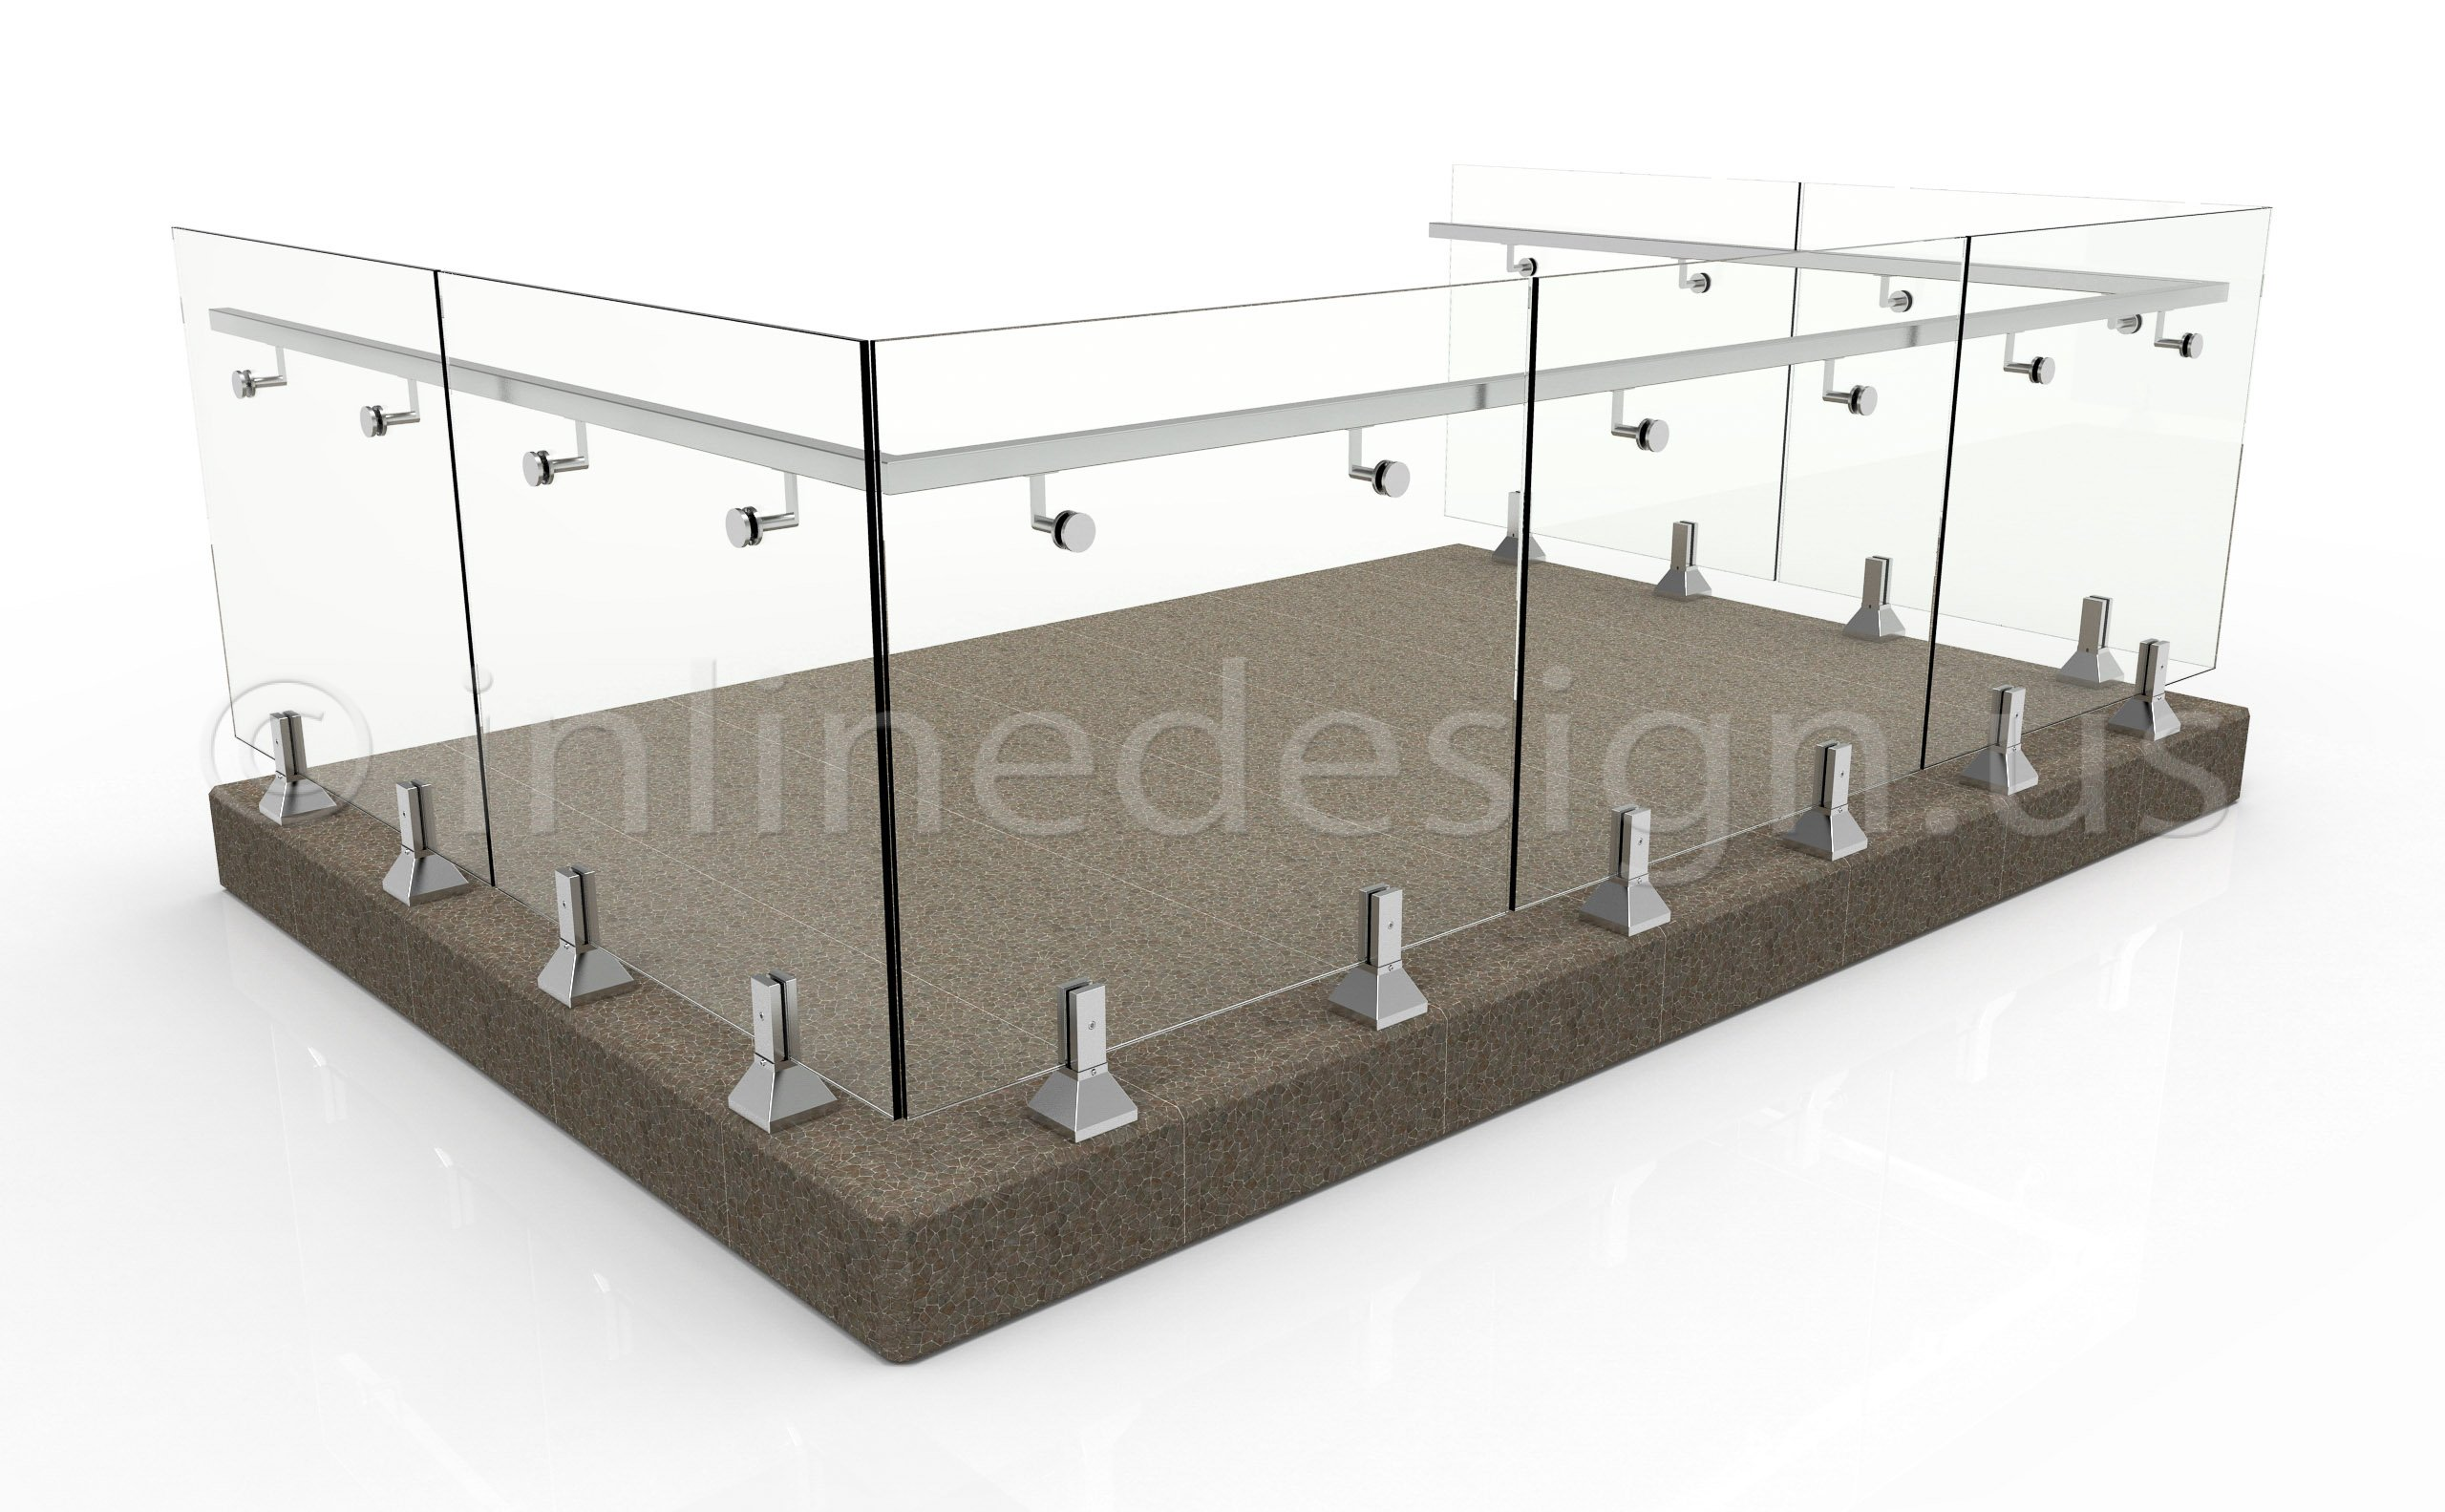 stainless steel spigot glass 42in high patio stone handrail